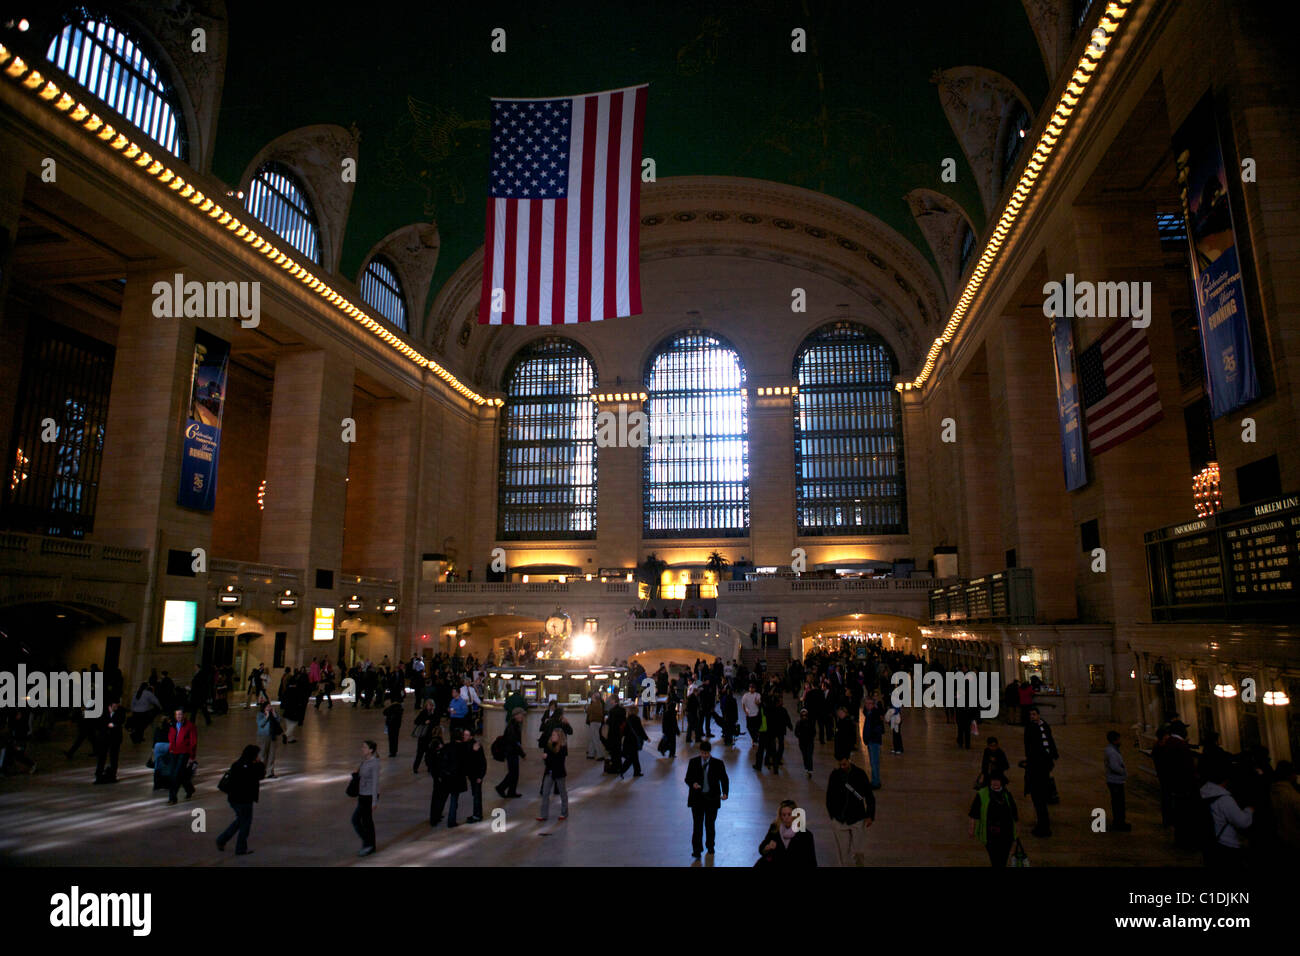 Penn Subway Station Manhattan Stock Photos & Penn Subway Station ...